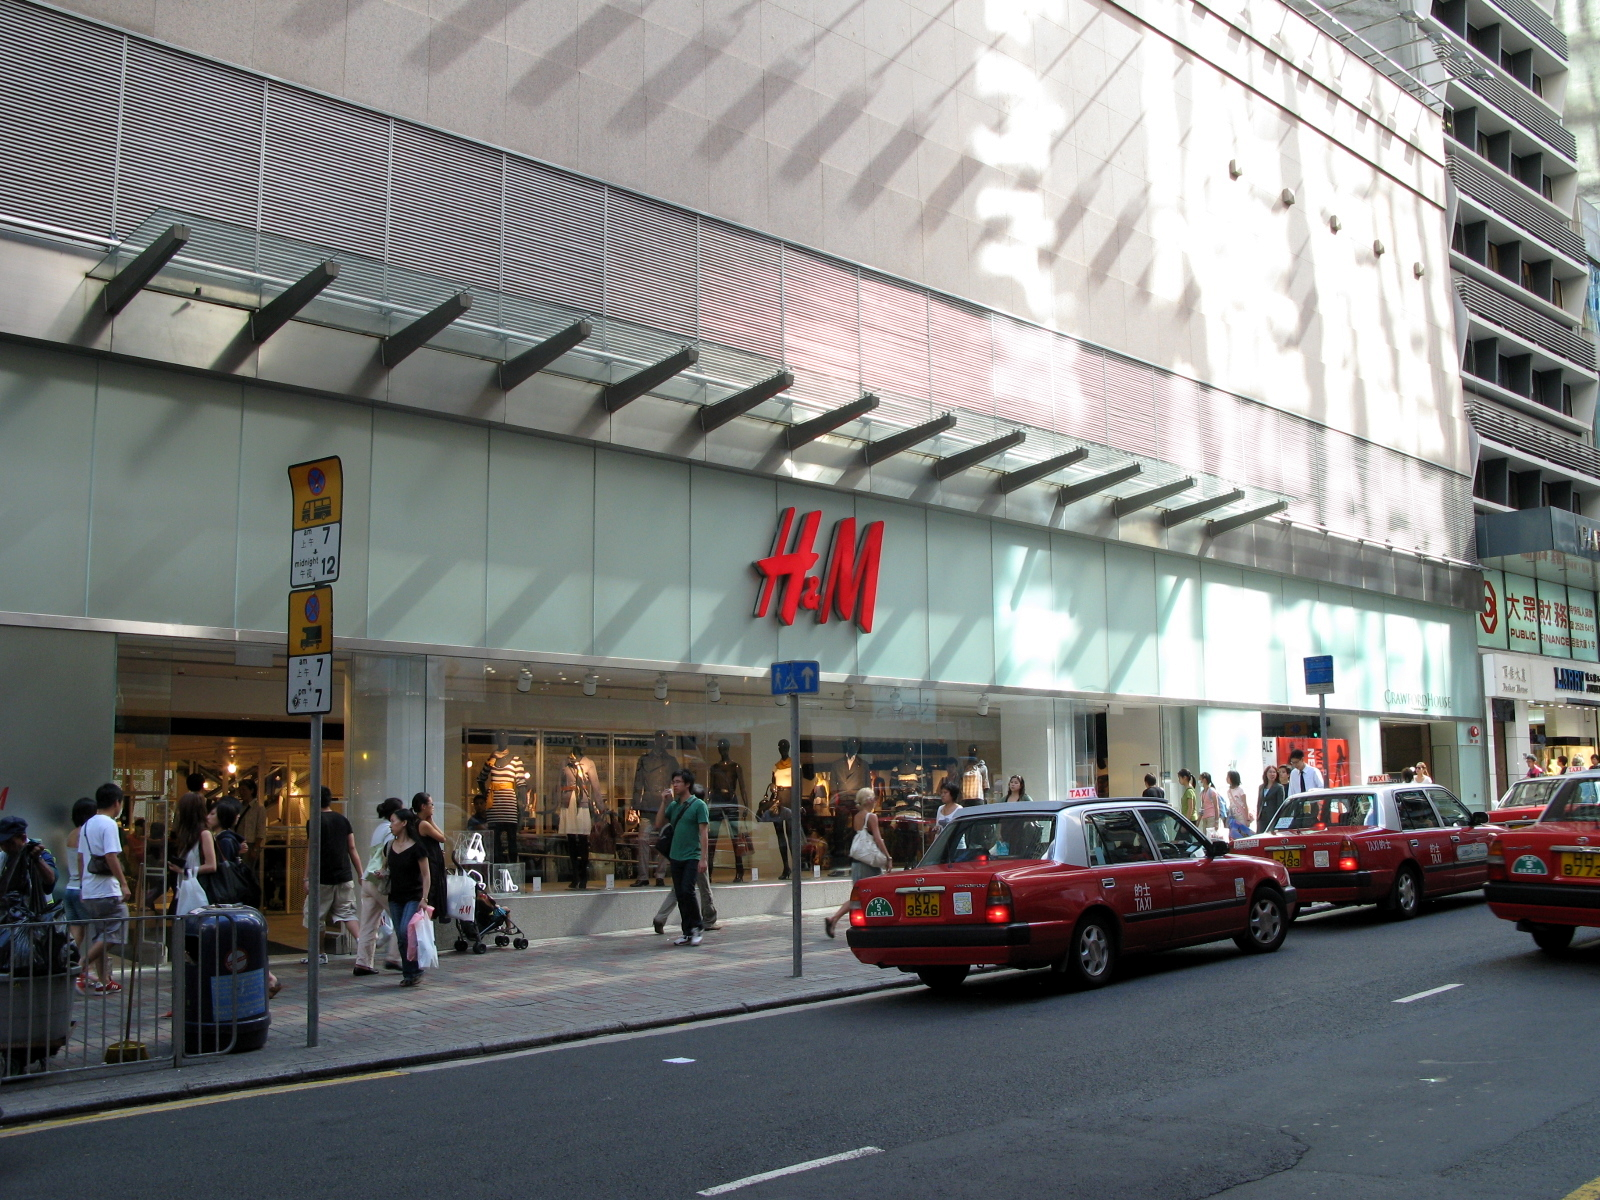 H&M has made public the names and addresses of its suppliers on its website. These suppliers are responsible for sourcing fabrics and other components needed to make the clothes. All supplier factories are audited by H&M to ensure that they meet the company's code of conduct, which covers environmental and social issues.